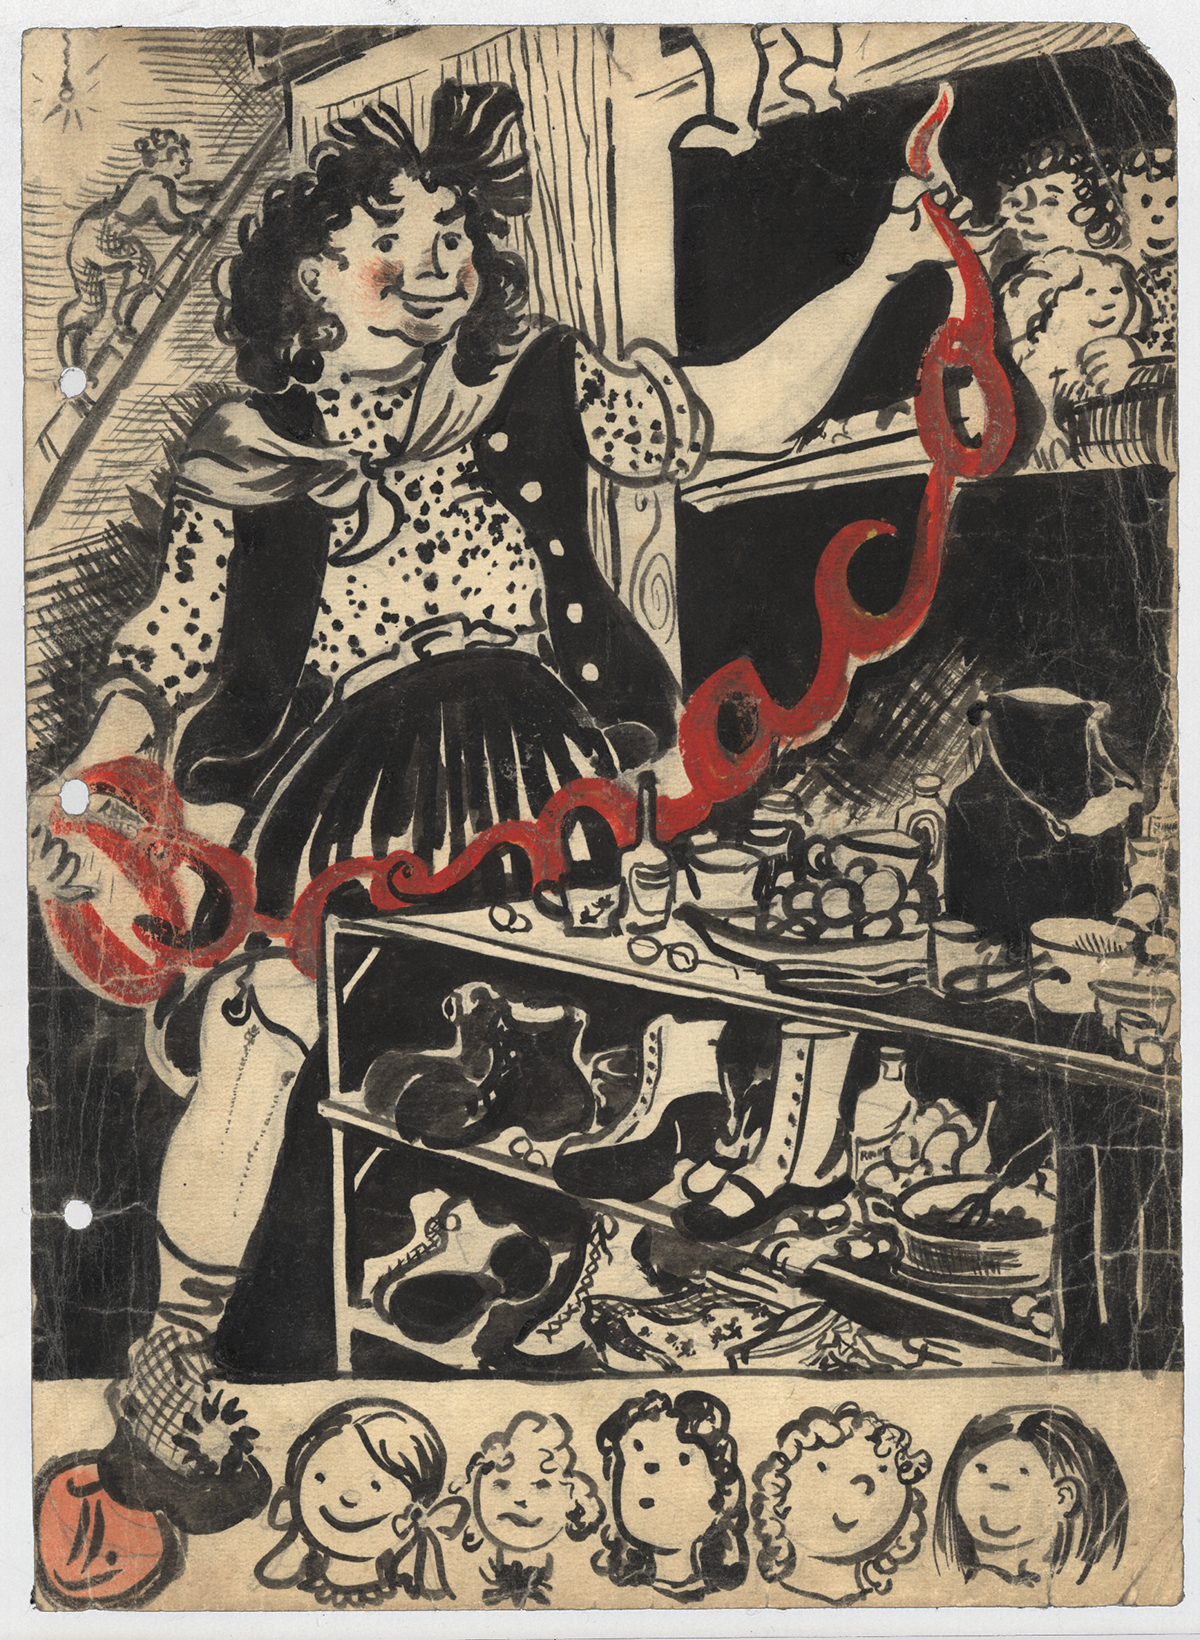 Cover of a Bonaco zine, featuring an ink illustration of a girl surrounded by shoes, food, and dolls